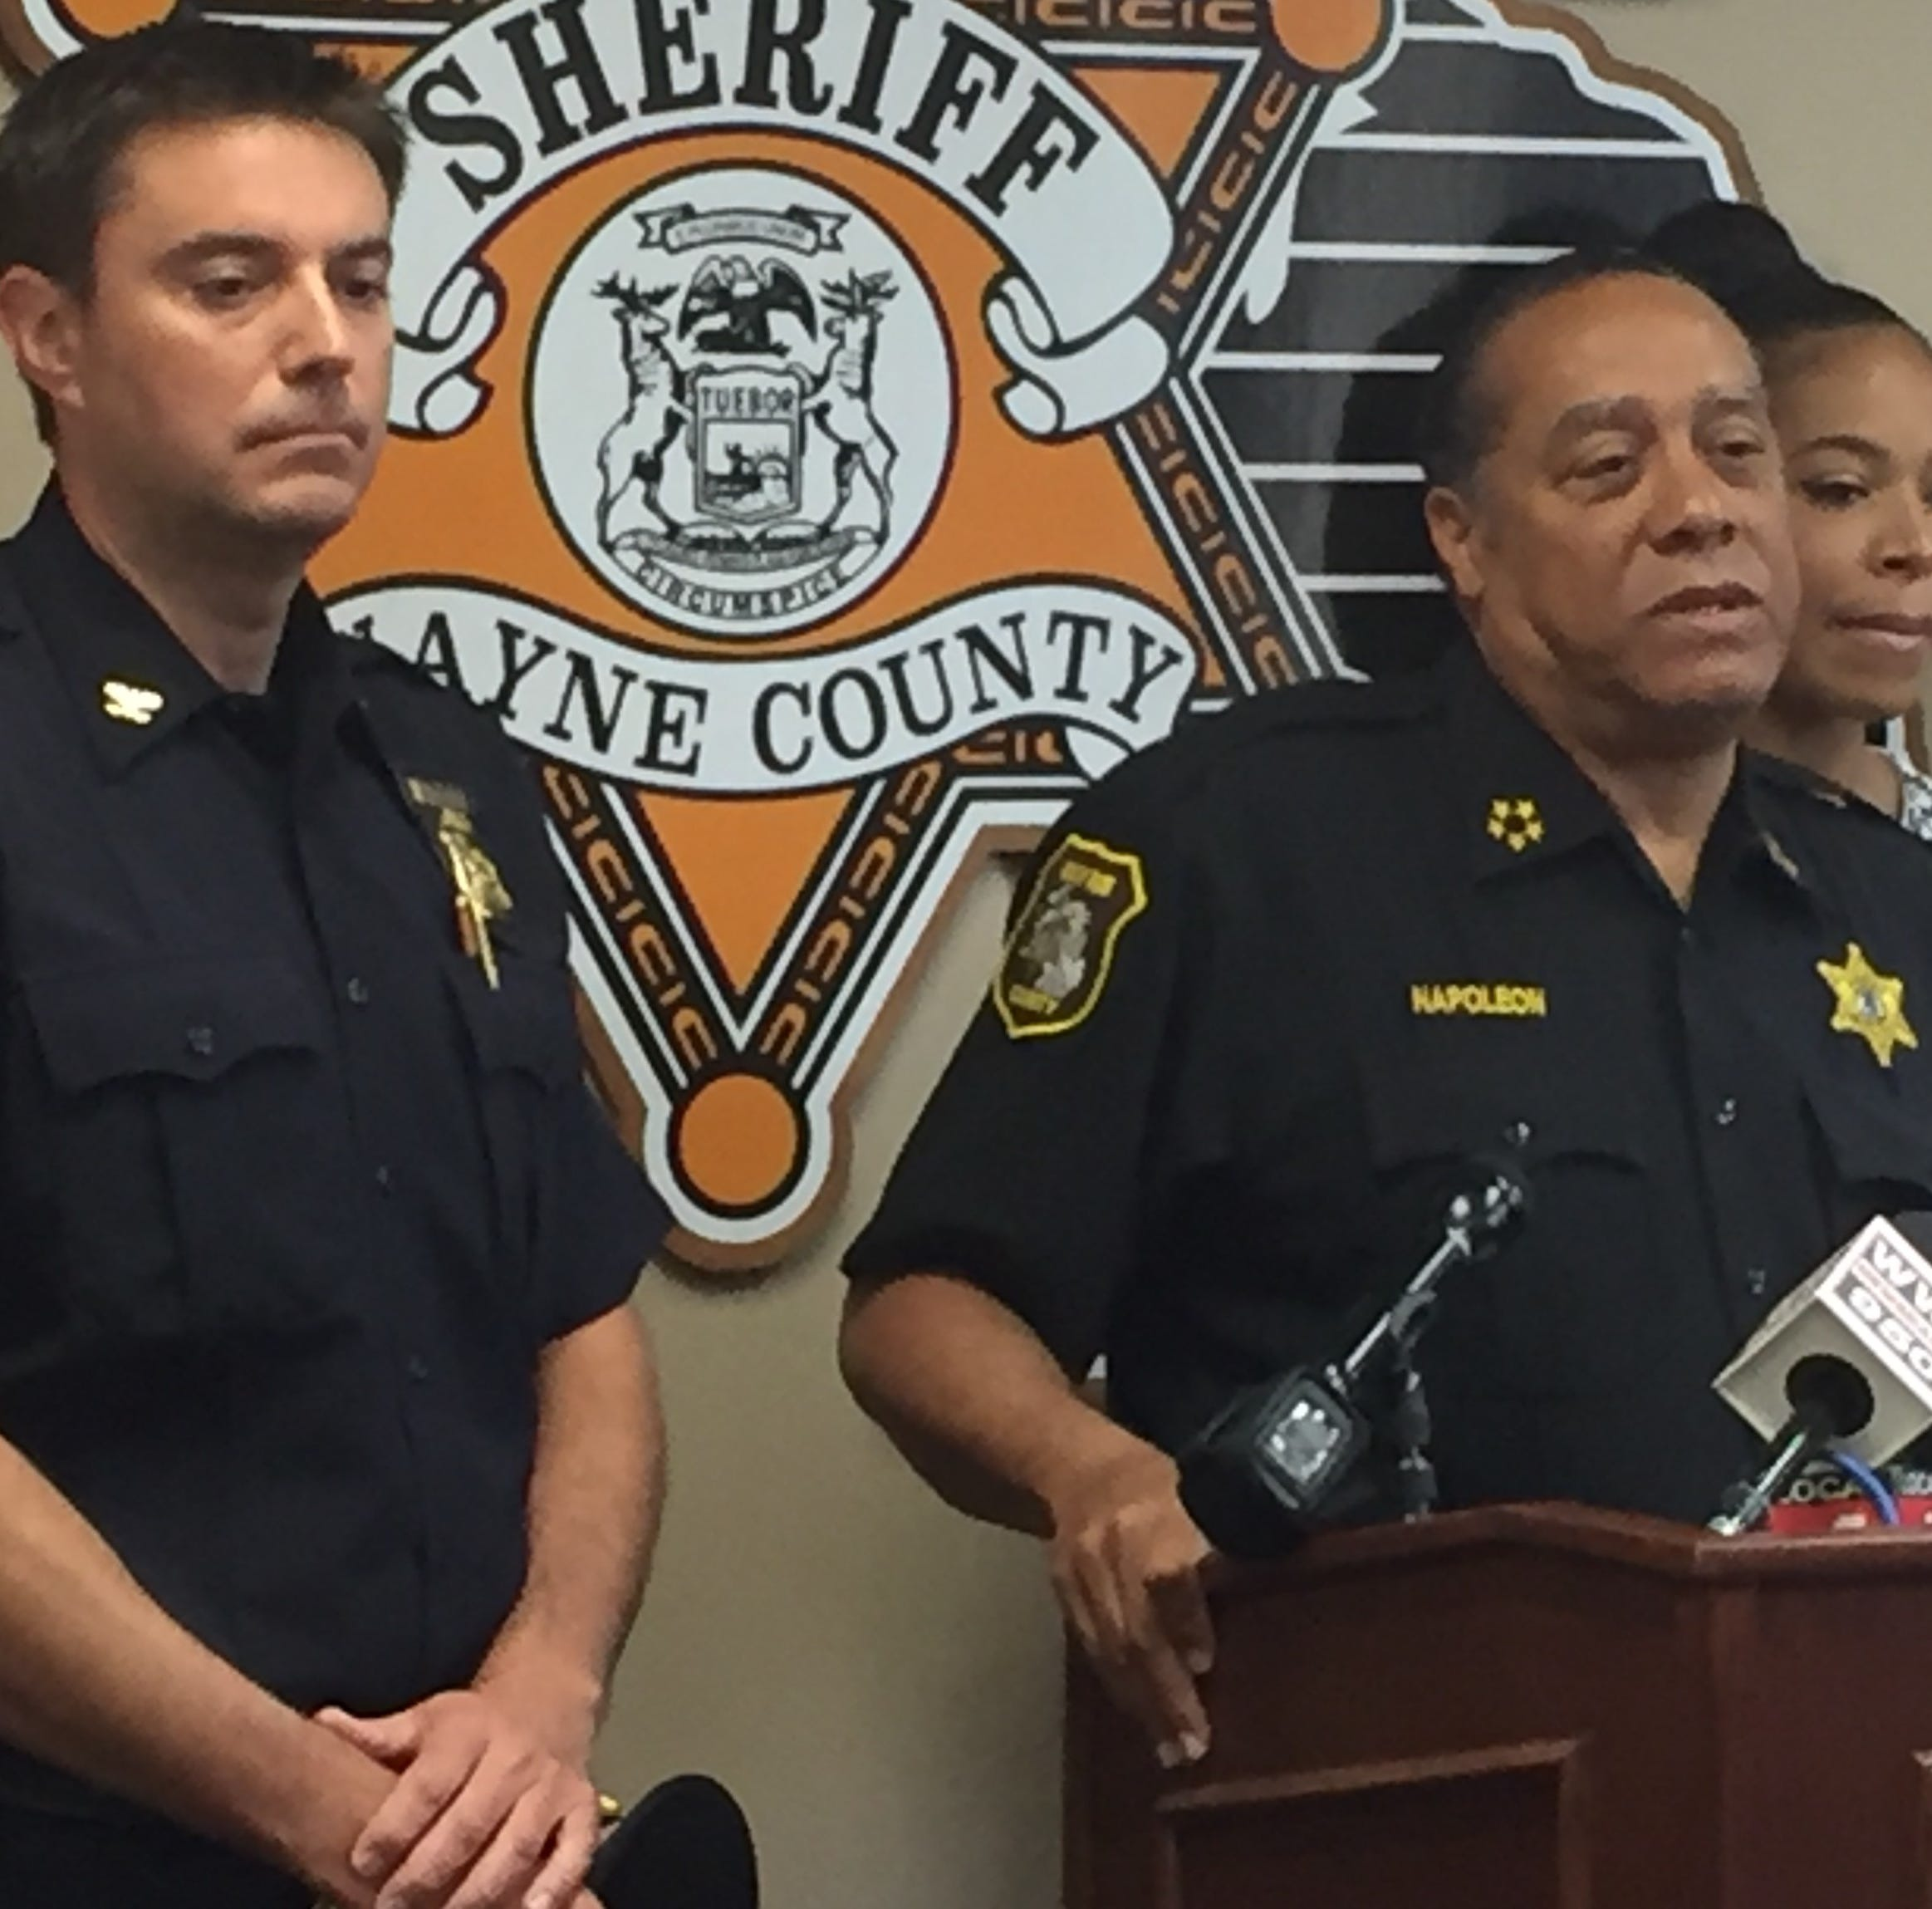 Westland Police Chief Jeff Jedrusik, left, and Wayne County Sheriff Benny Napoleon at a Thursday press conference after the arrest of a suspect in the death of Sgt. Lee Smith, a deputy sheriff killed in an Aug. 14 hit-and-run.